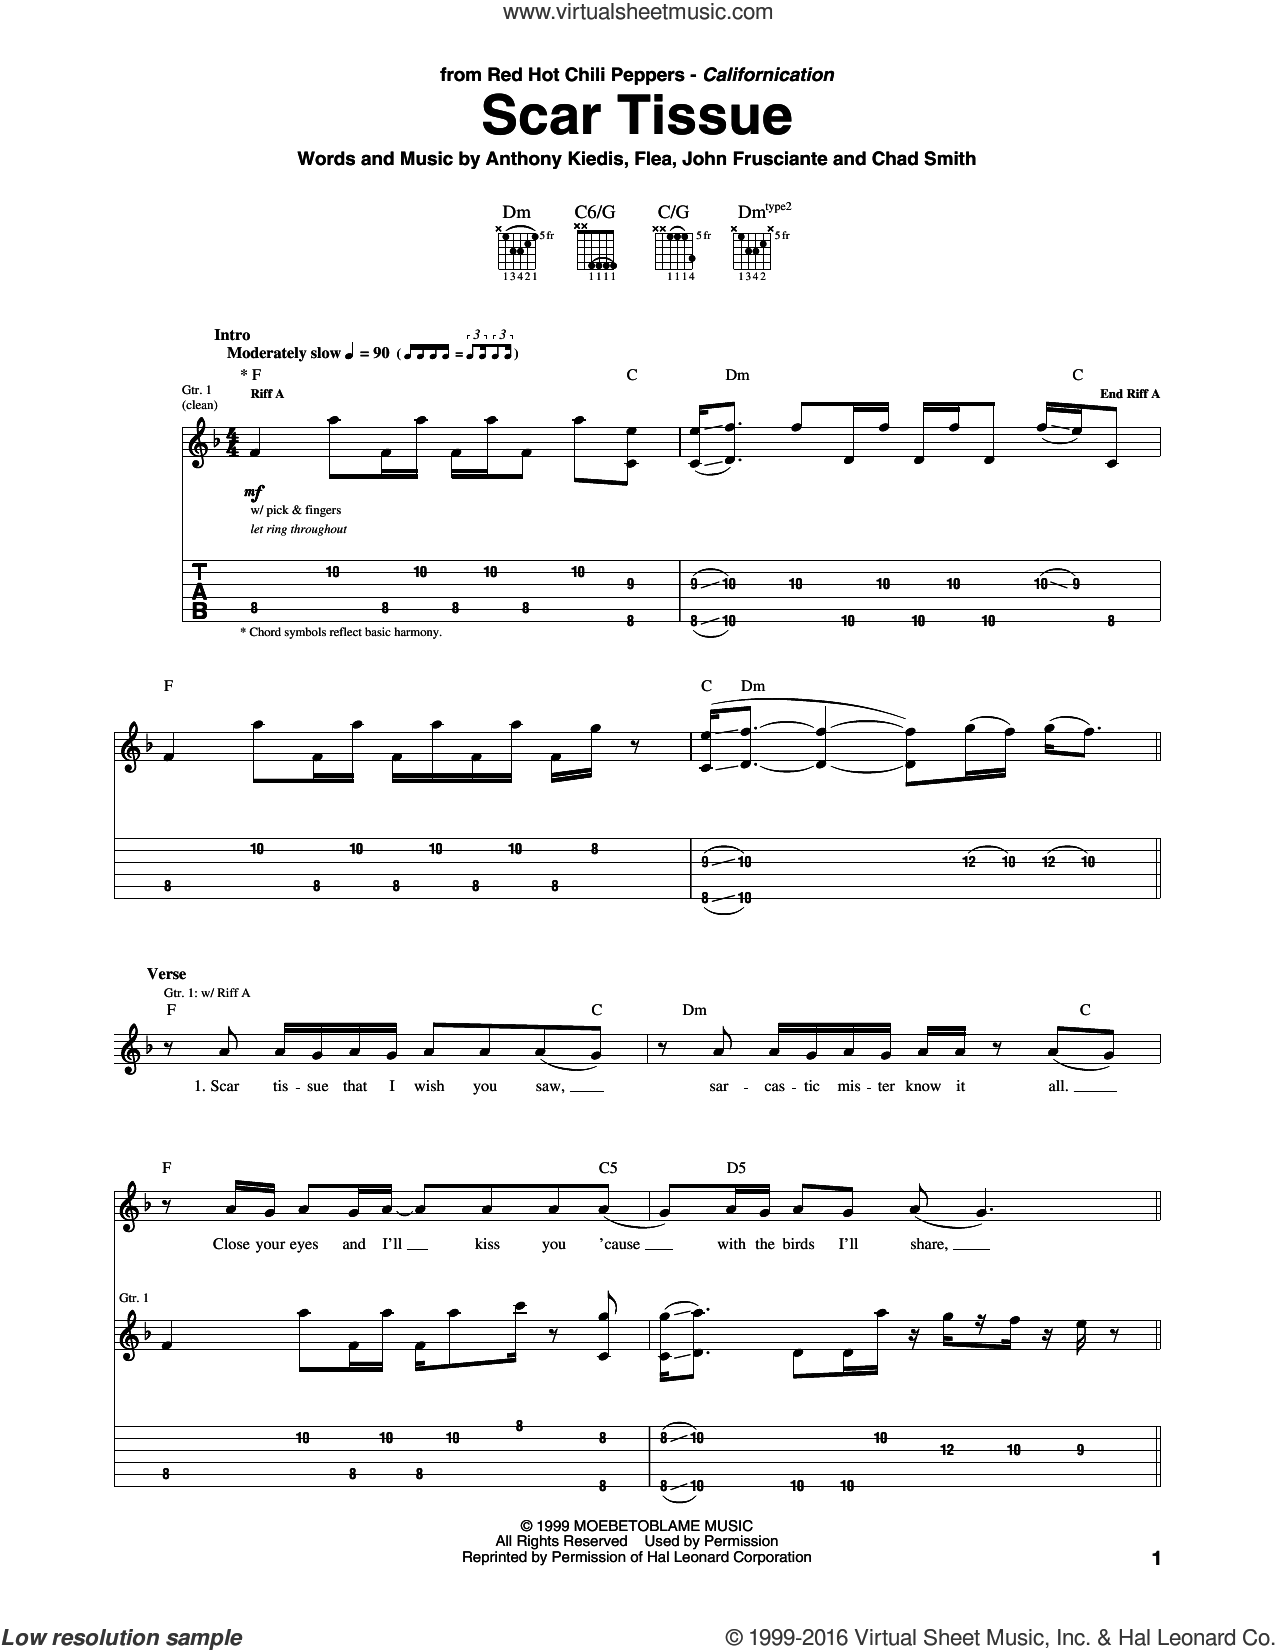 Scar Tissue sheet music for guitar (tablature) by John Frusciante, Red Hot Chili Peppers and Flea. Score Image Preview.